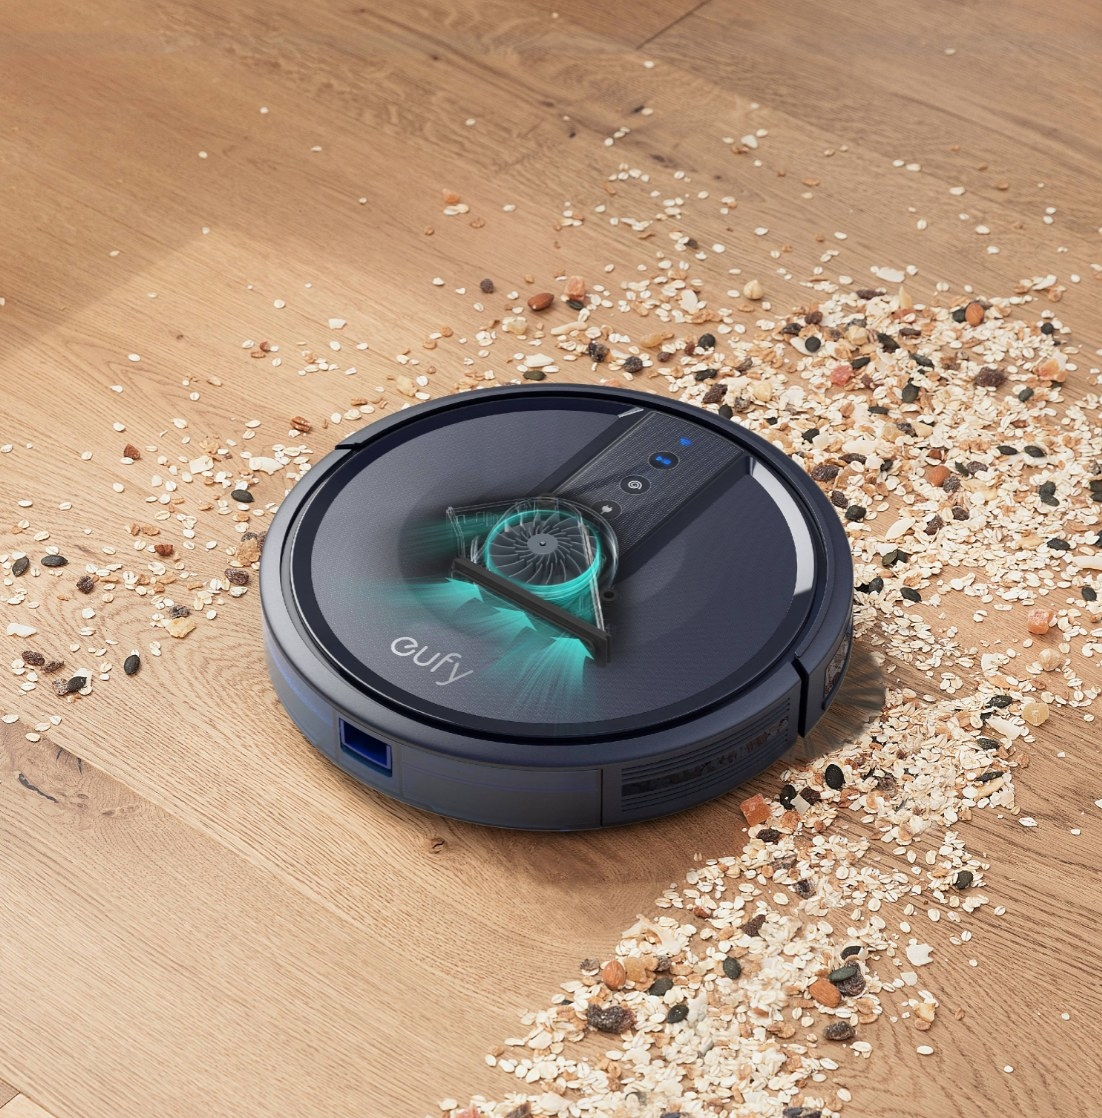 The wifi connected robo vacuum